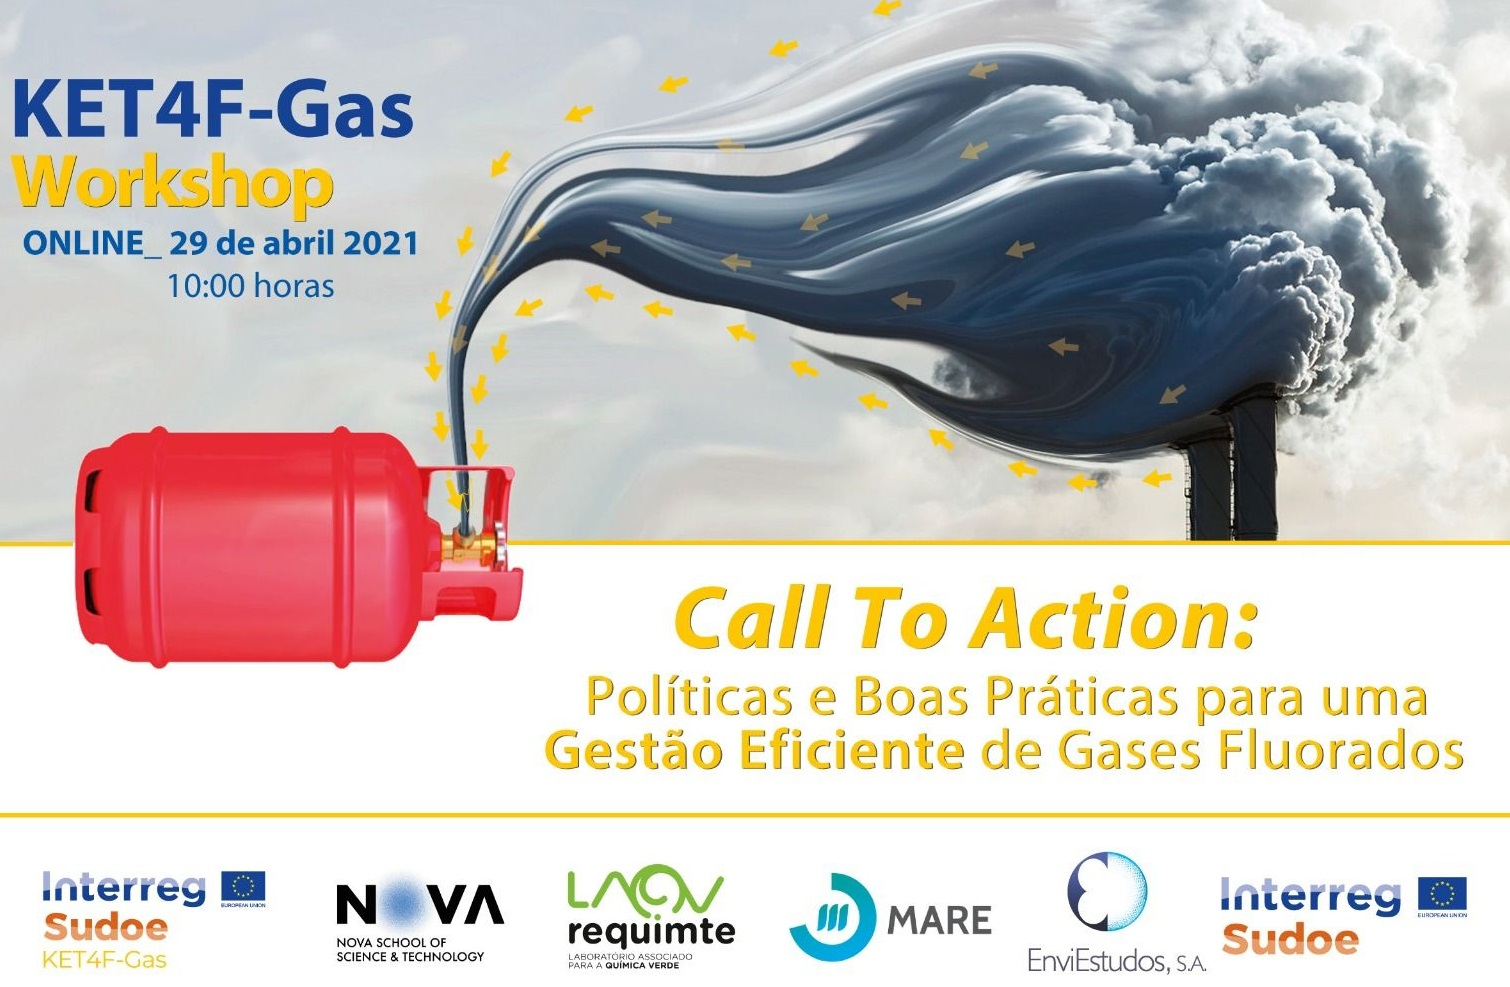 Workshop KET4F-Gas: Call to Action   29 abril 2021